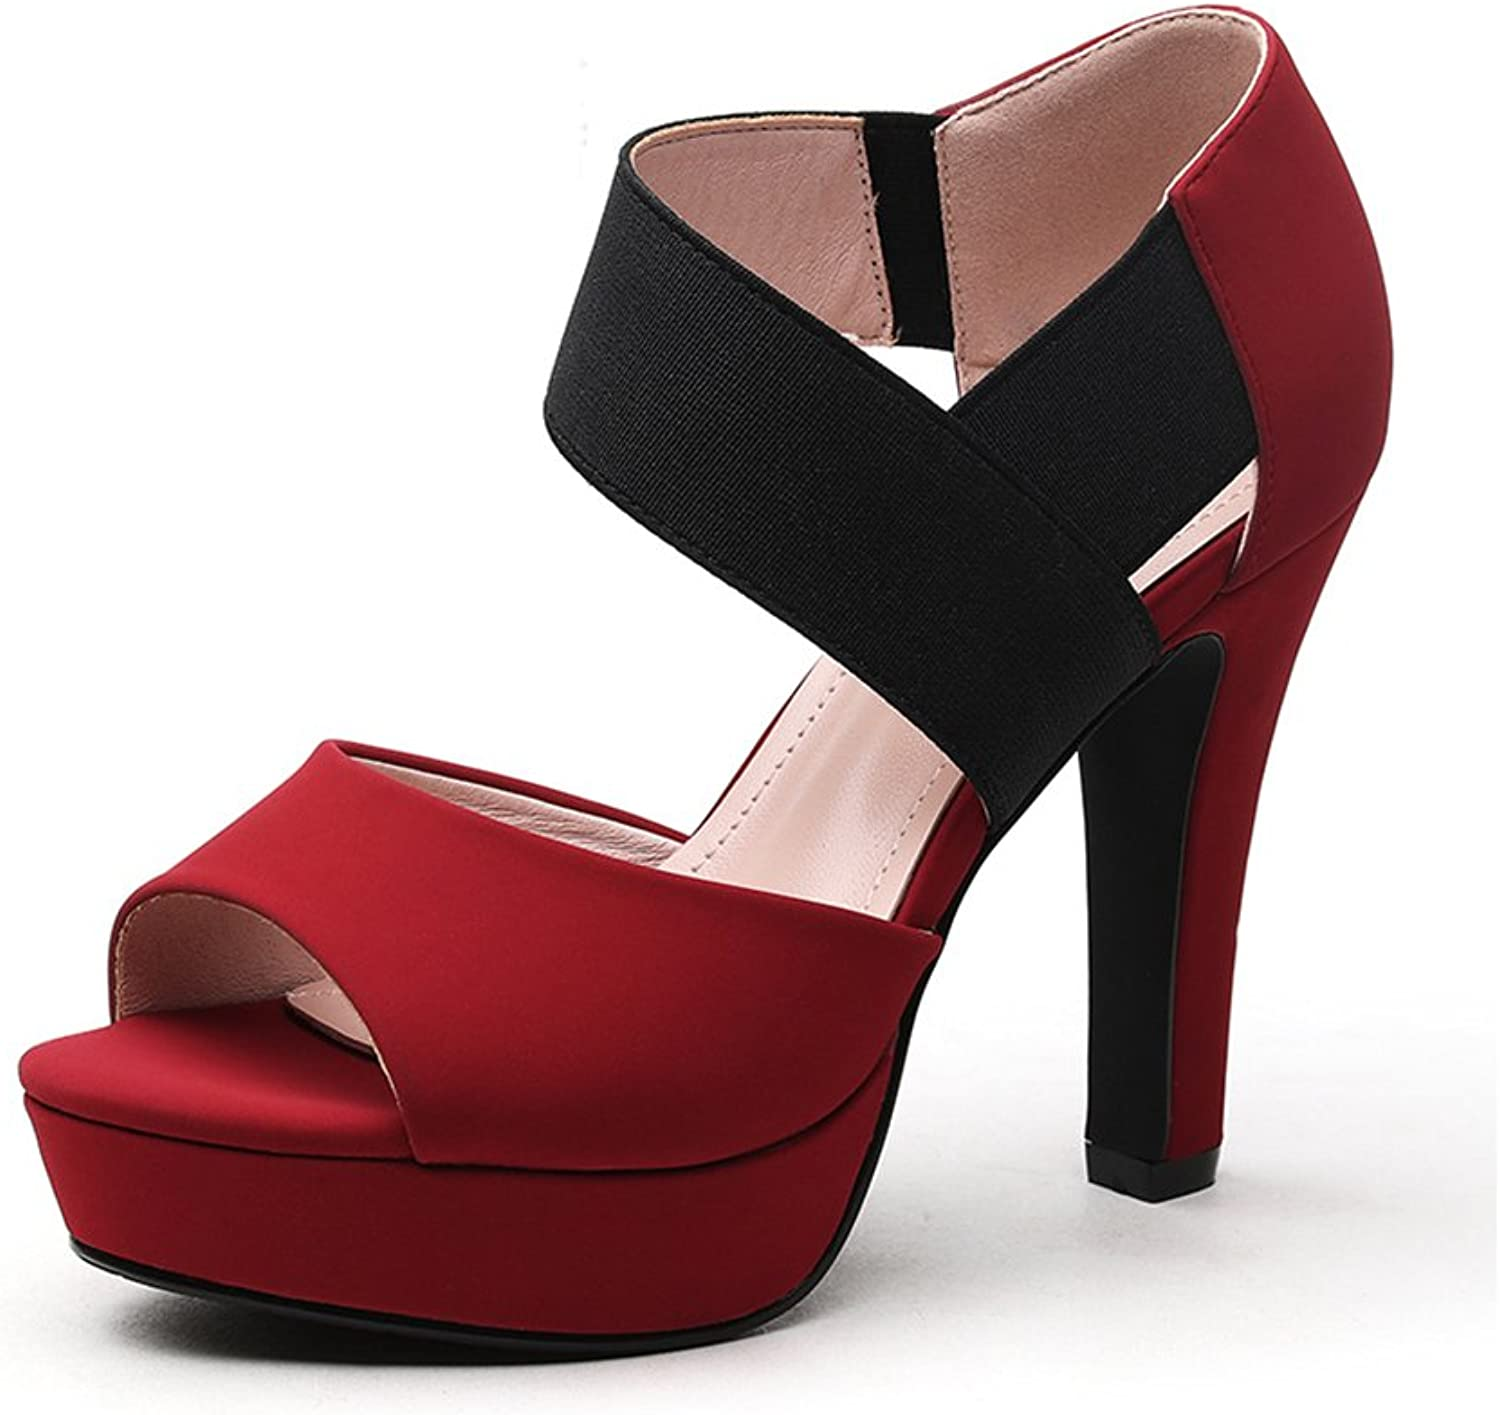 New Summer Spring high Heels Single shoes sandals Fashion Women's shoes (high 11cm) (color   Red, Size   35)